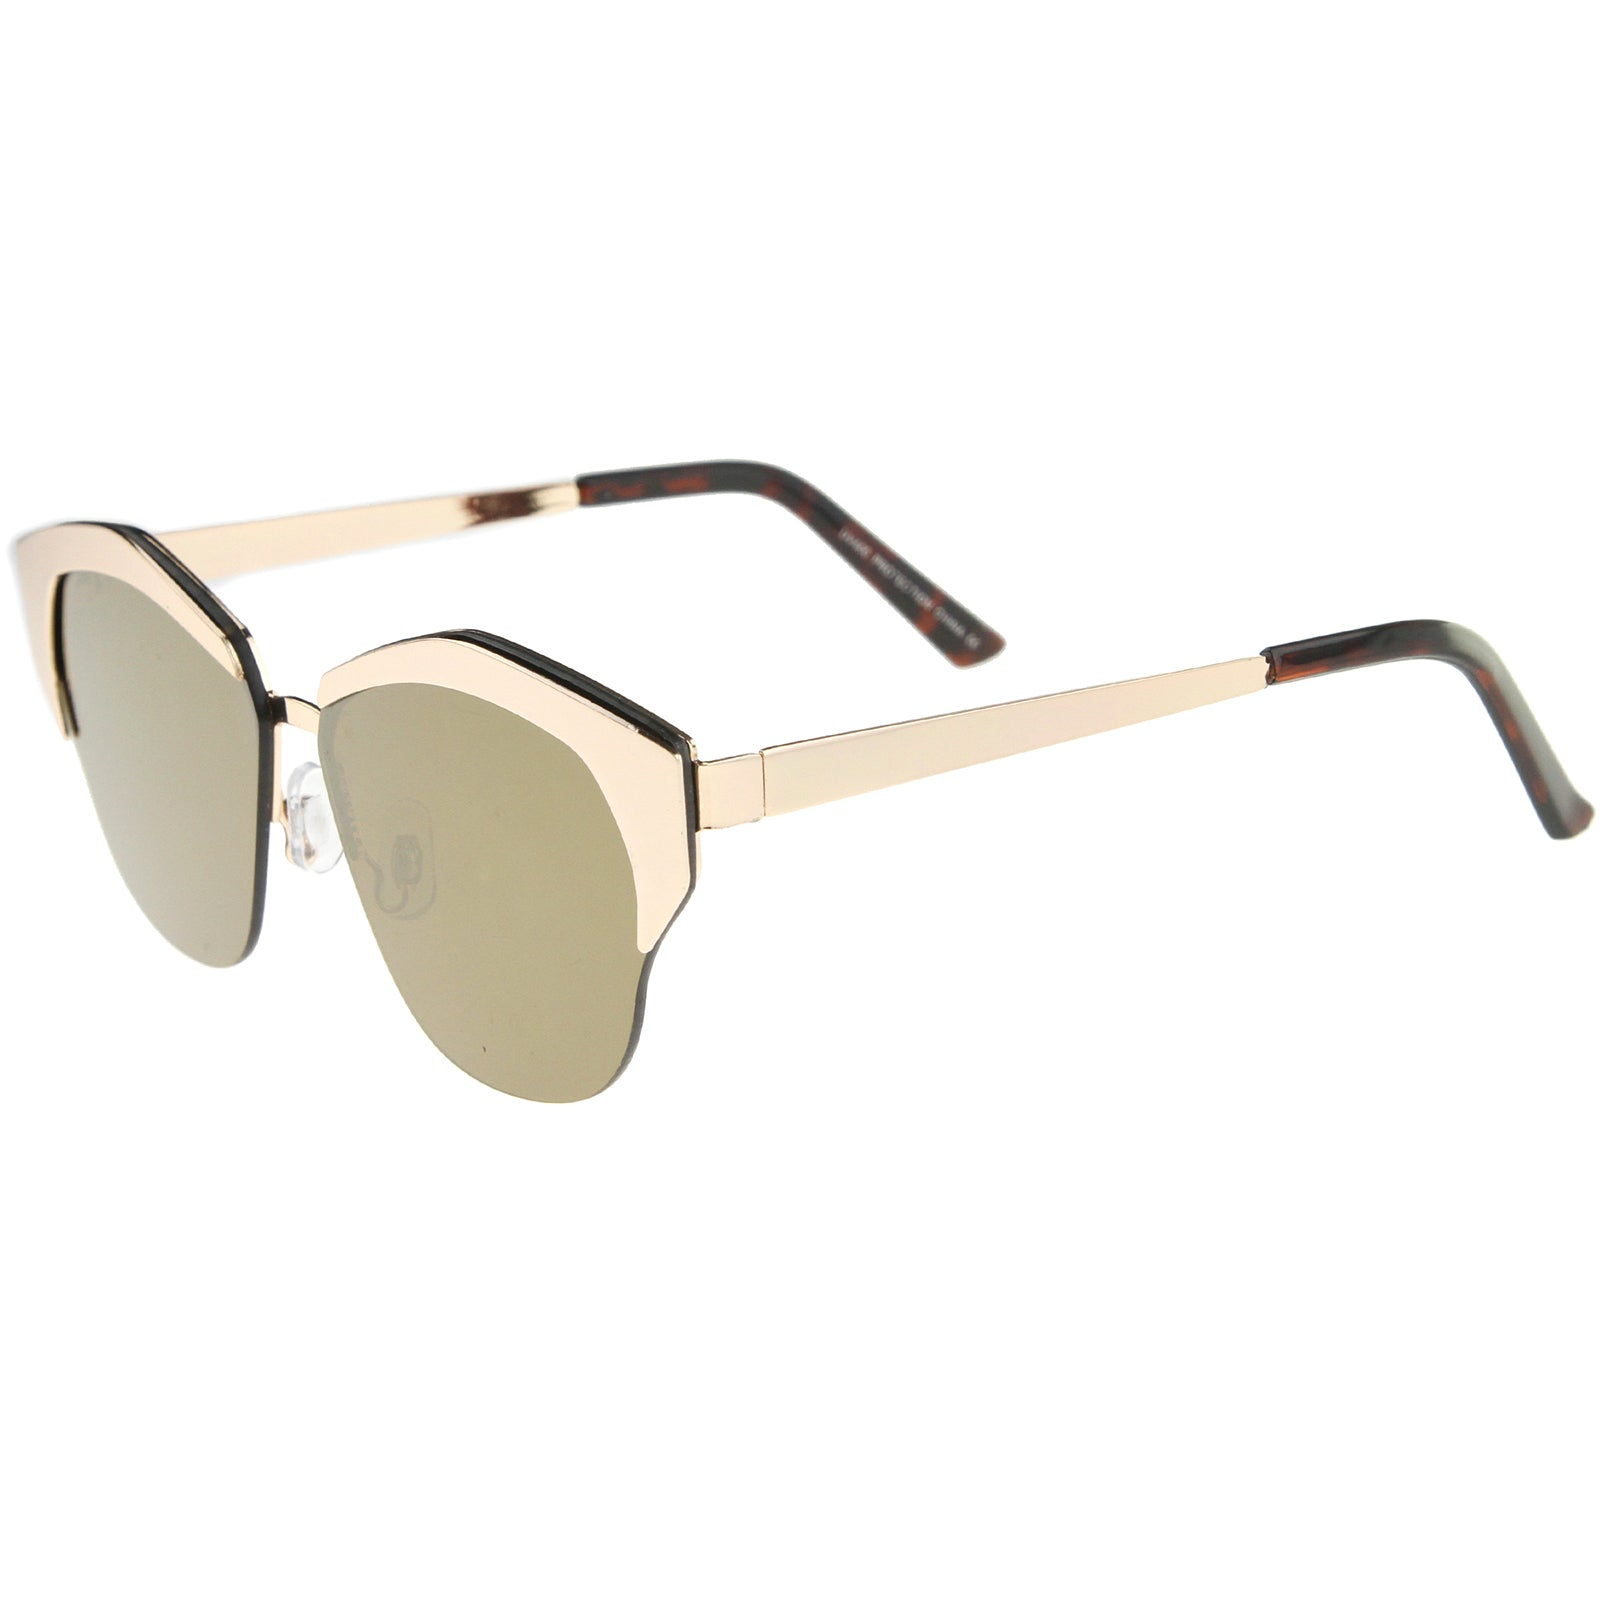 Women's Semi-Rimless Color Mirror Flat Lens Cat Eye Sunglasses 58mm - sunglass.la - 3